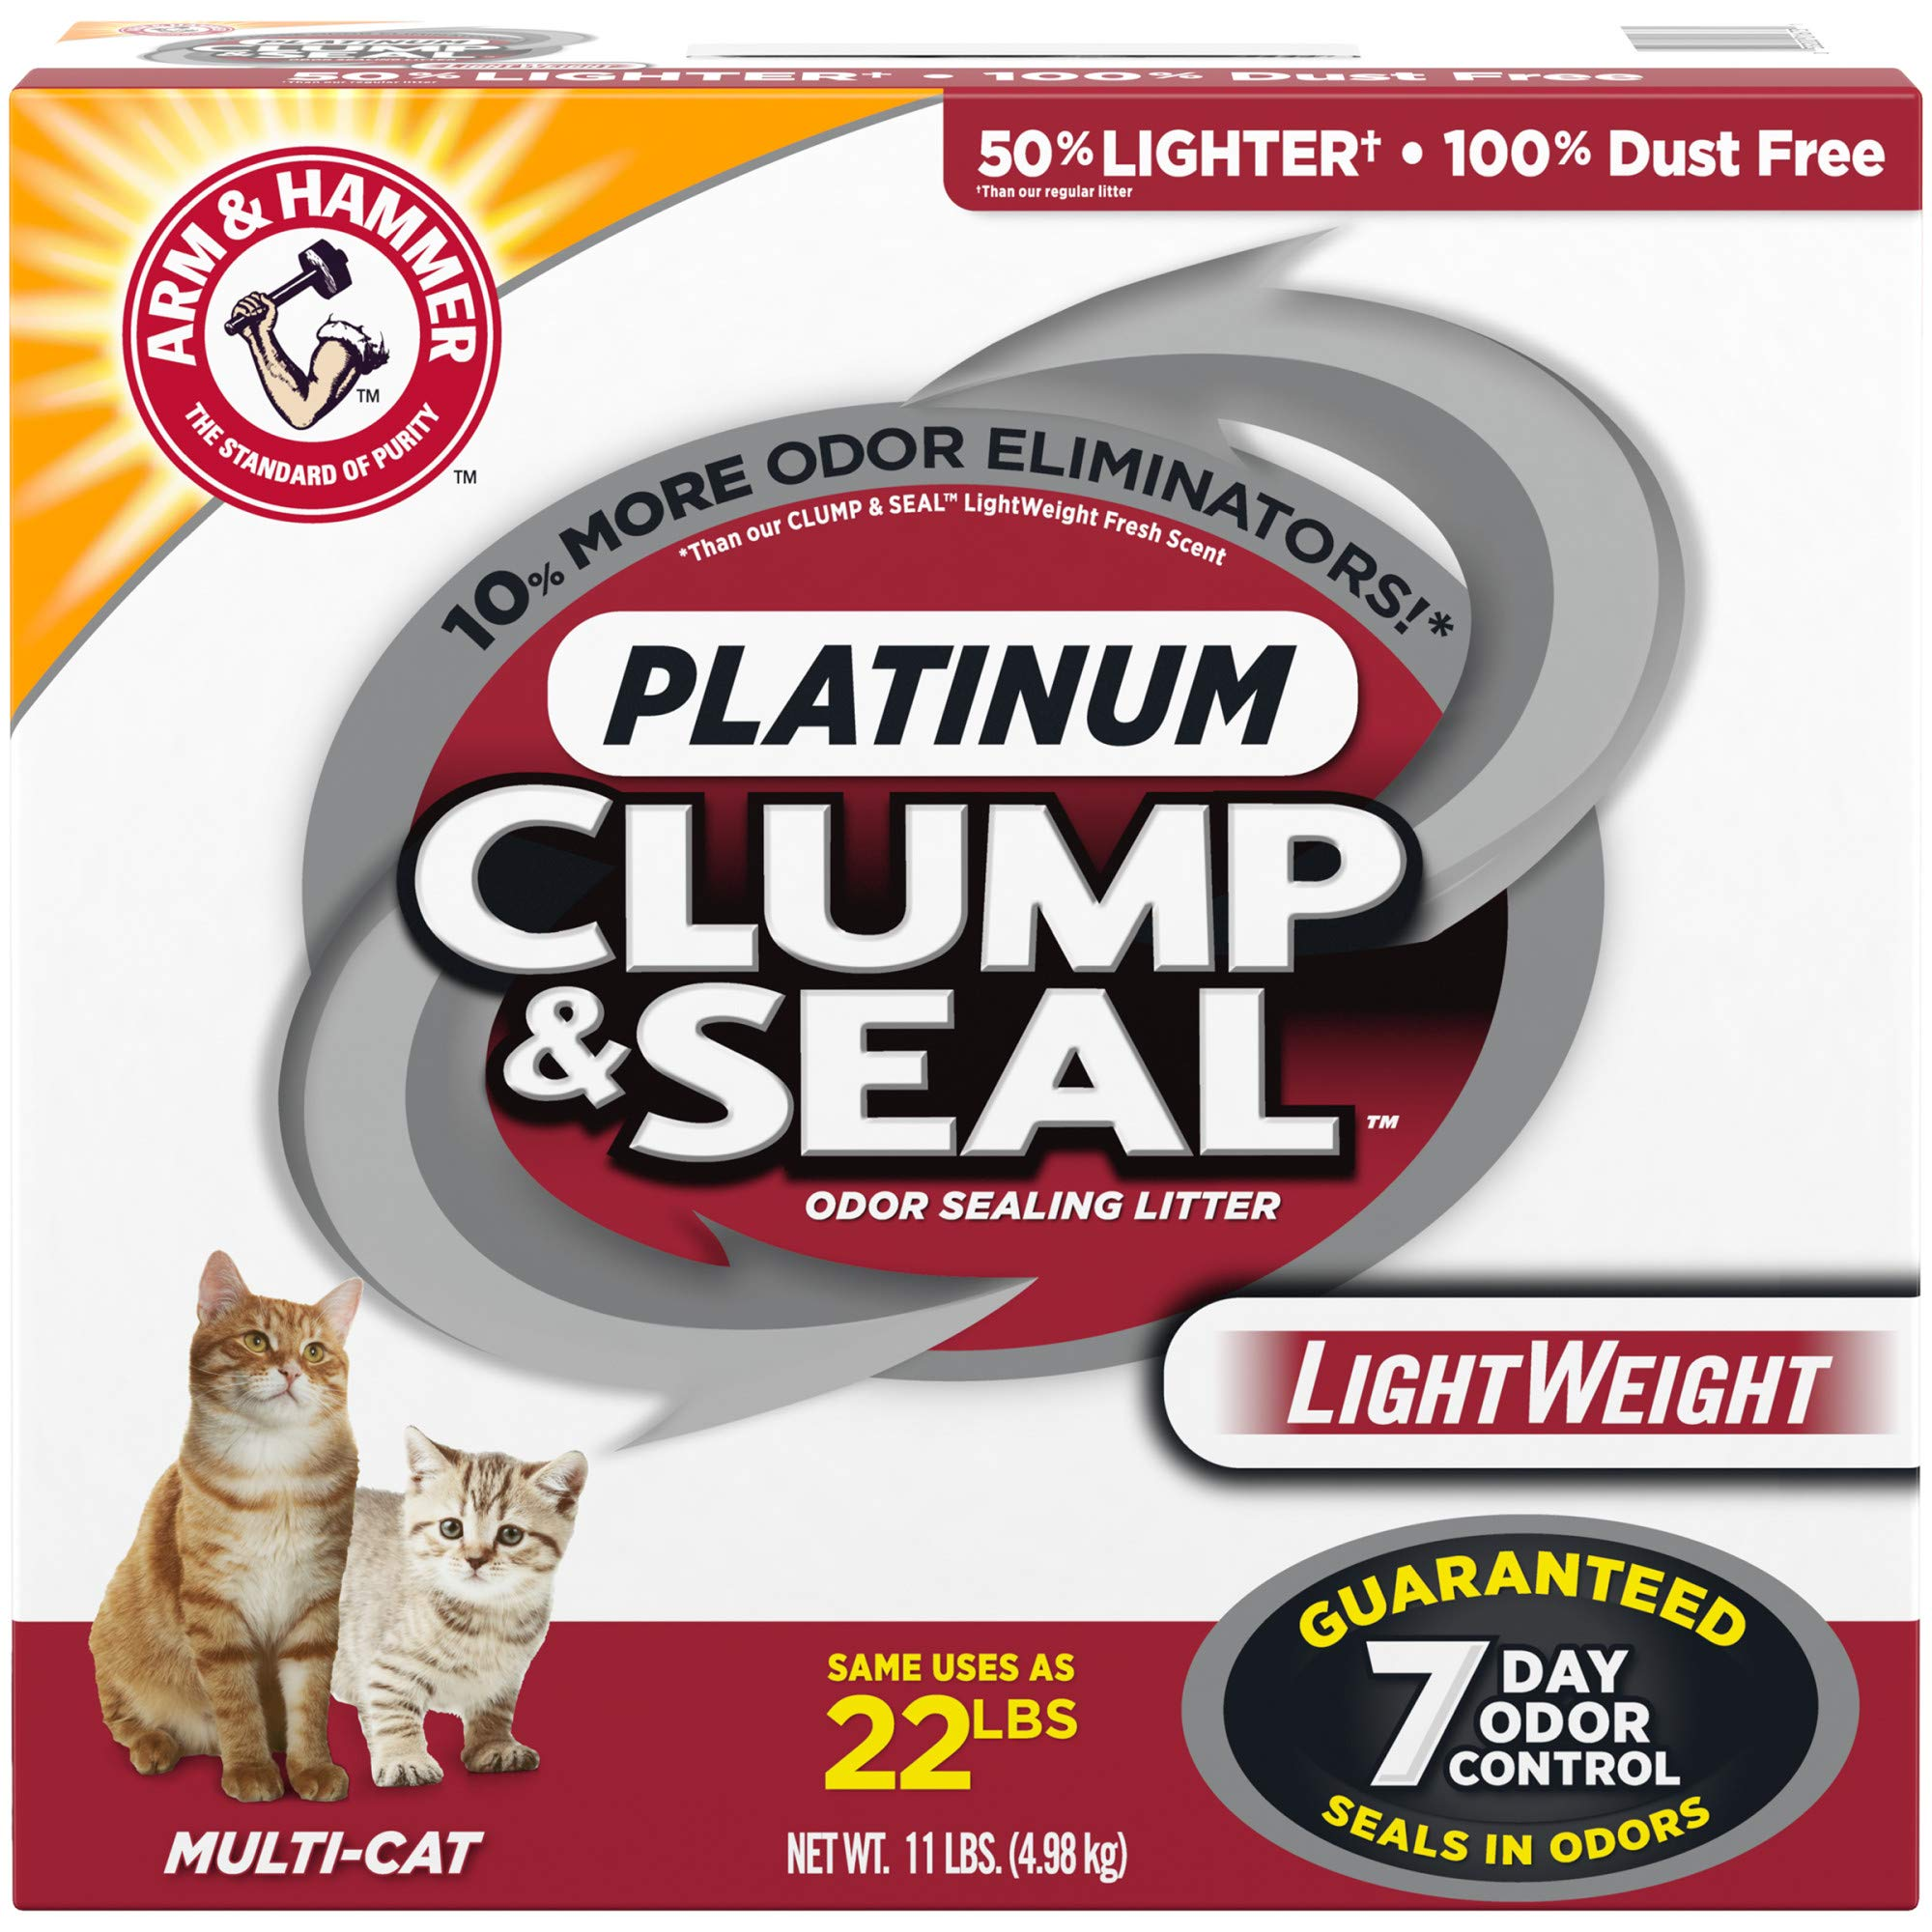 Arm & Hammer Clump & Seal Platinum Lightweight Cat Litter, Multi-Cat, 11Lbs by Arm & Hammer